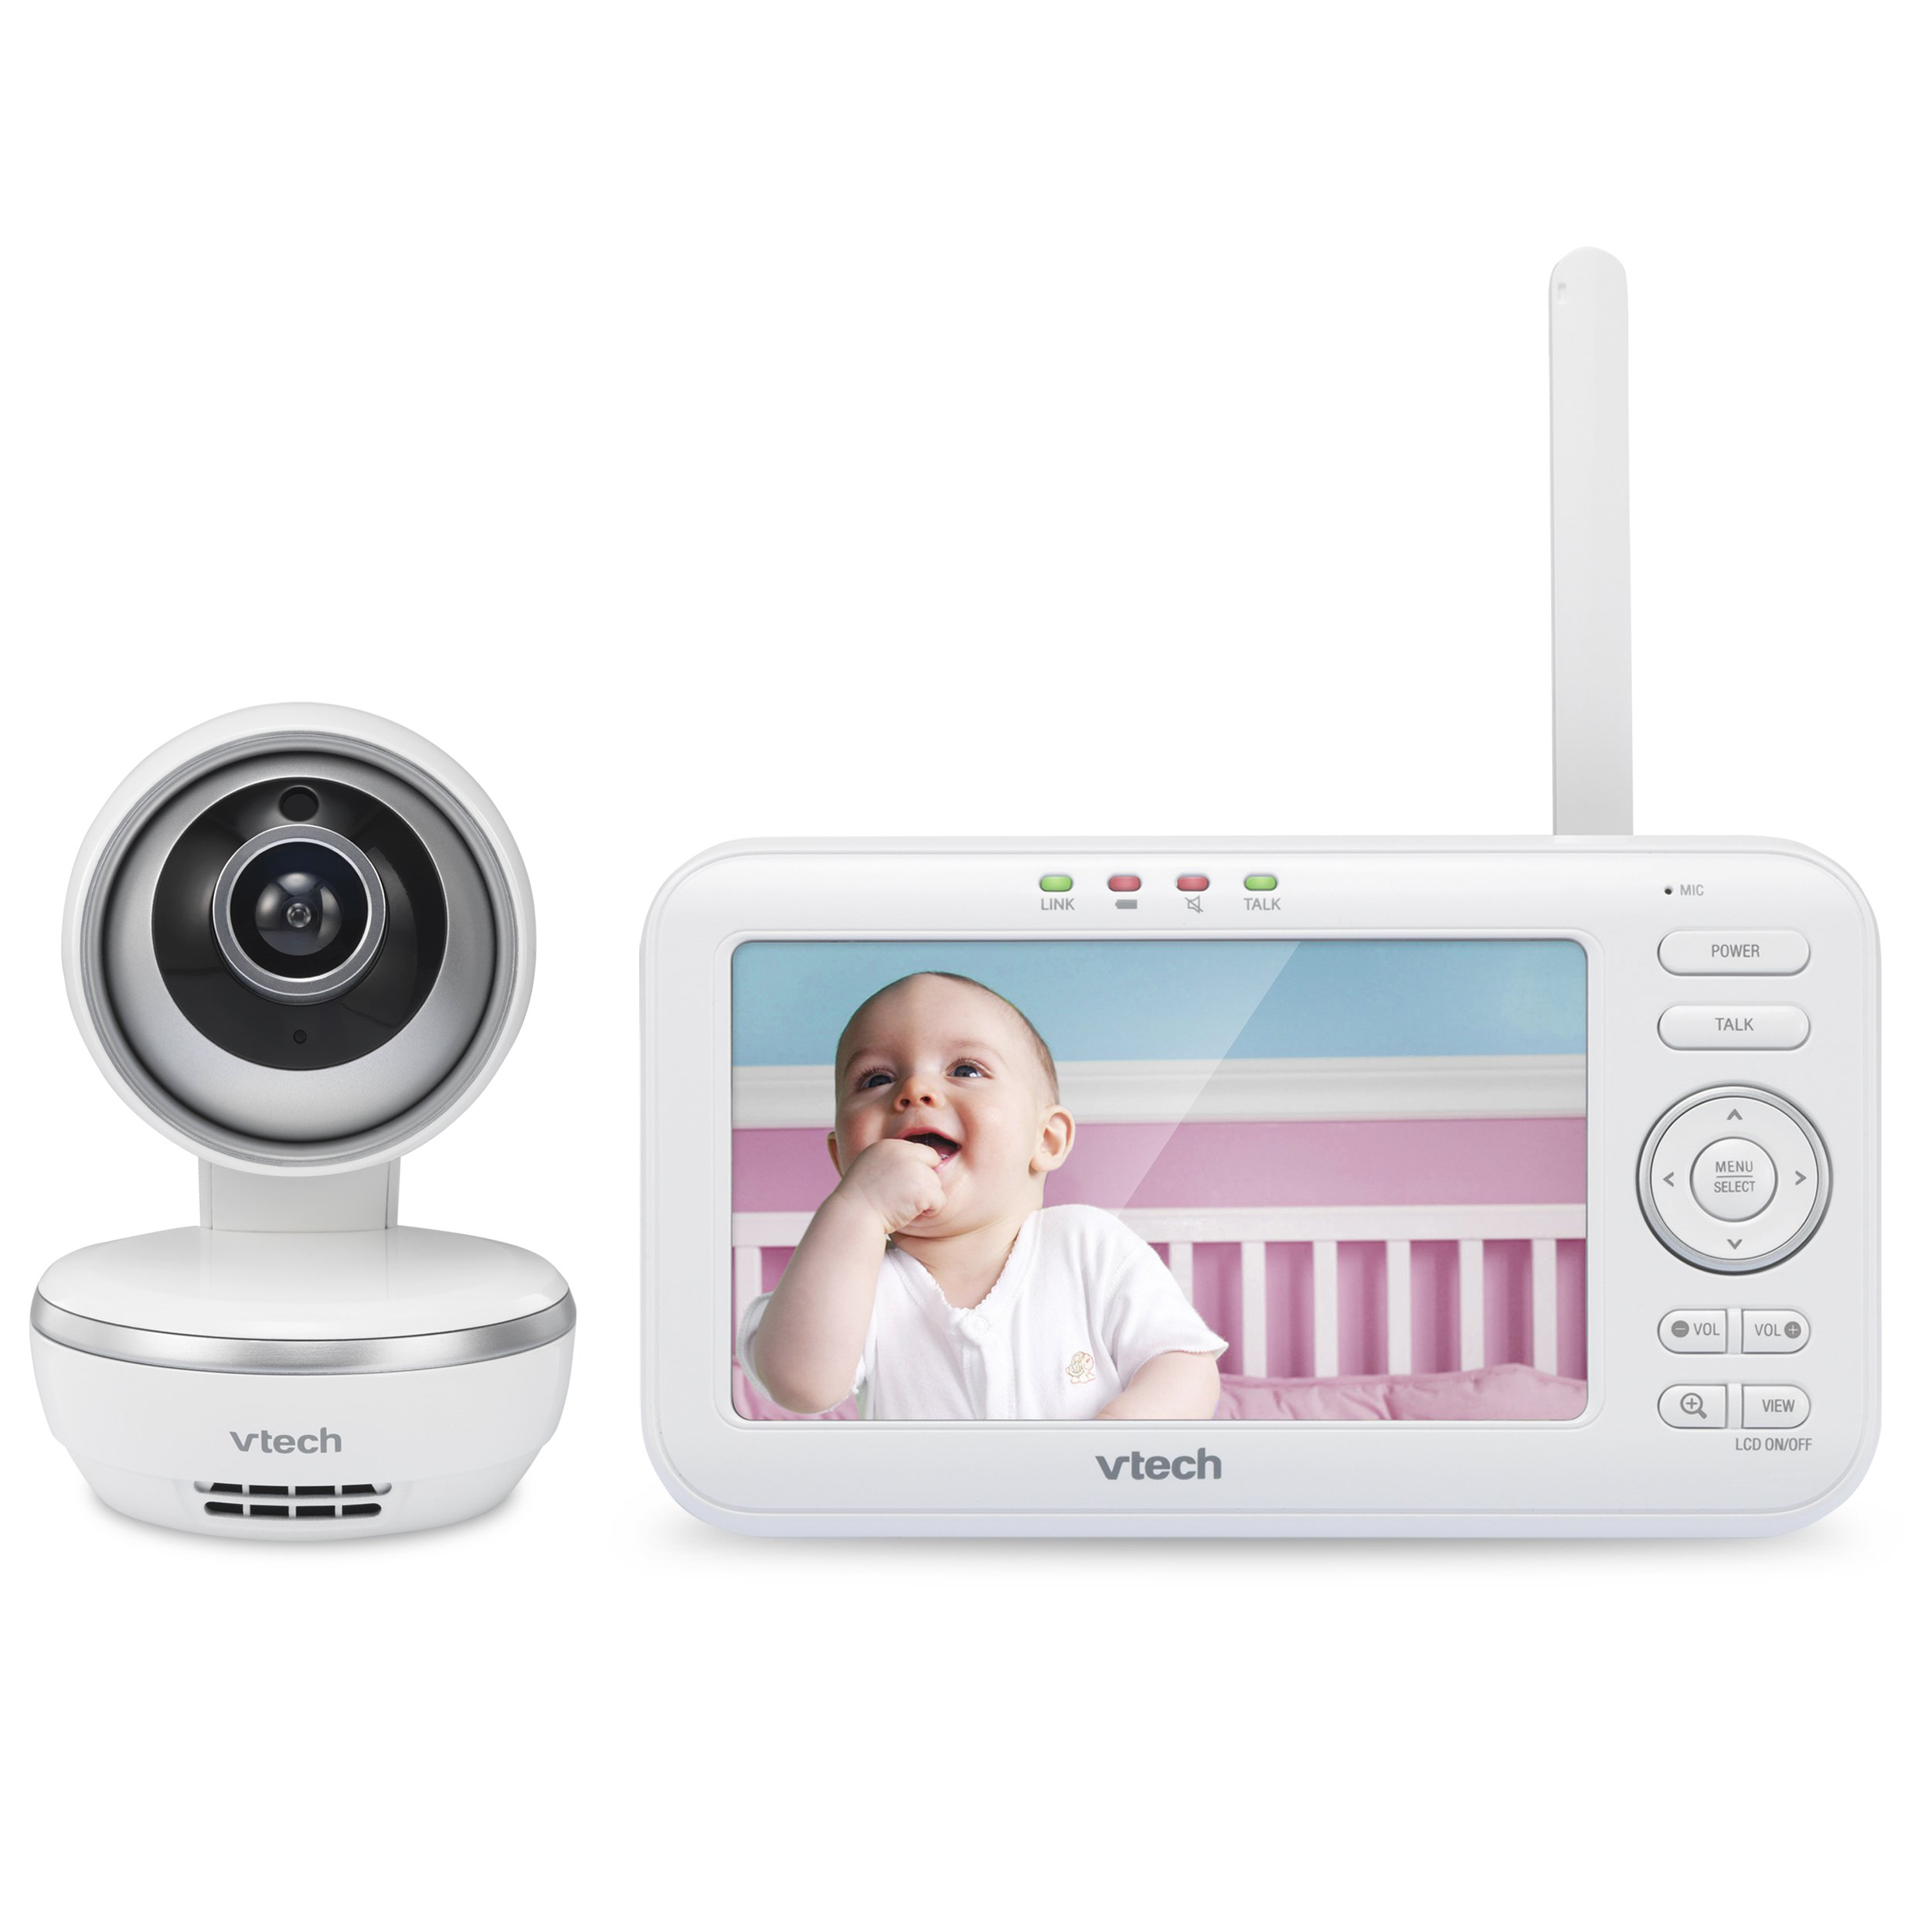 "VTech VM5261 5"" Digital Video Baby Monitor with Pan & Tilt Camera, Wide-Angle Lens and Standard Lens, White by VTech (Image #2)"